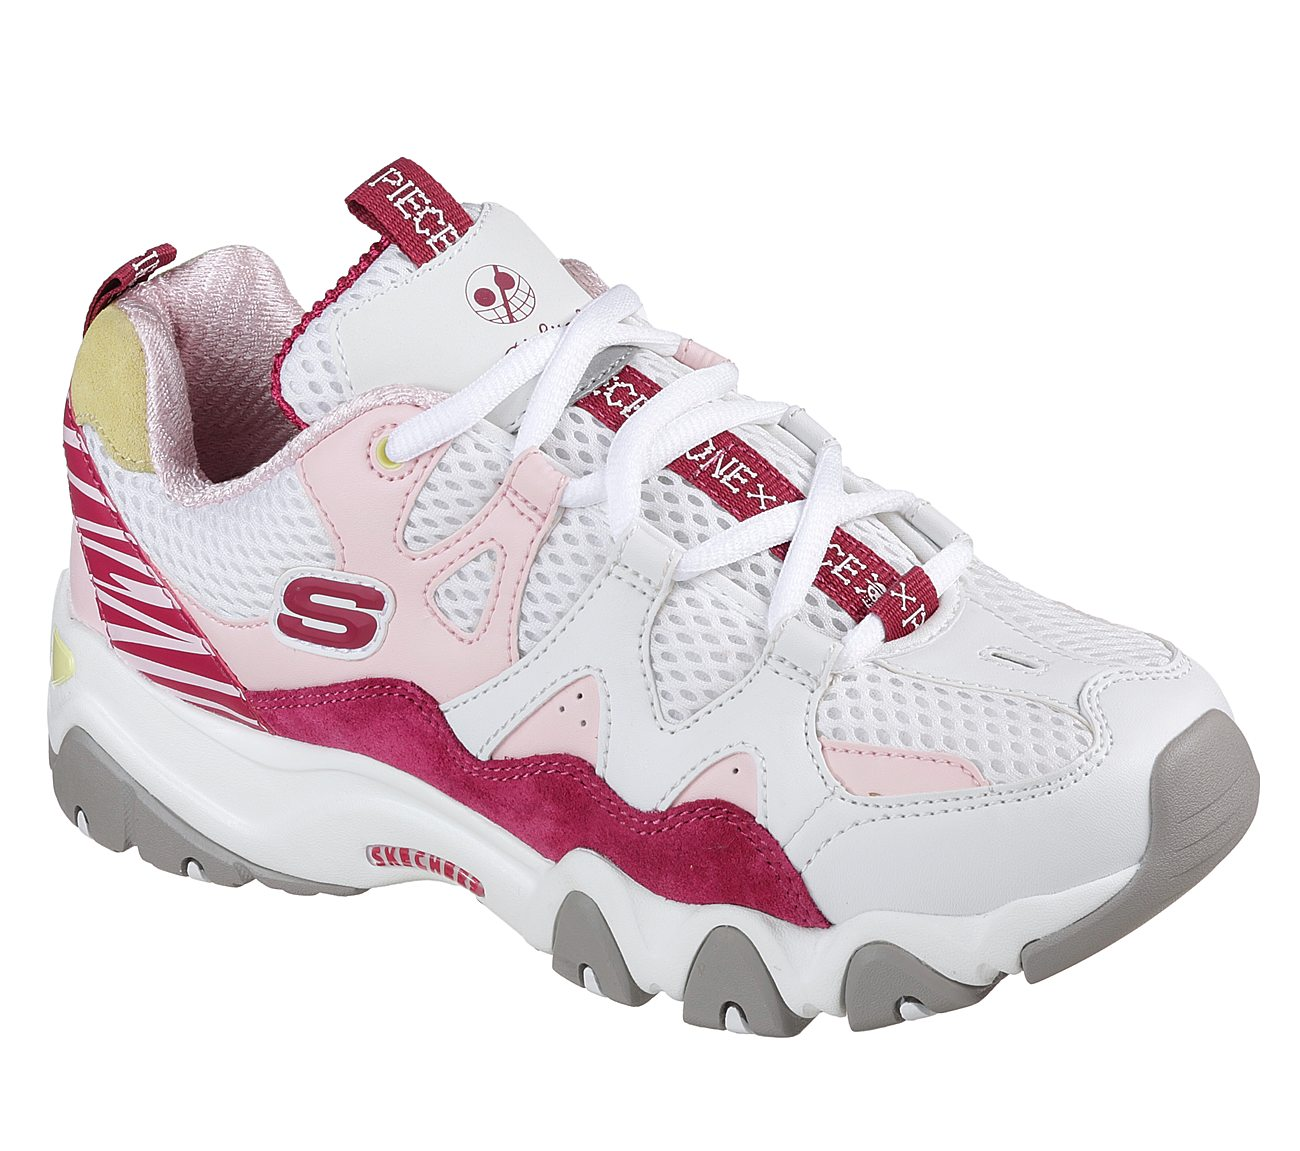 56a0d4dd96d5 Buy SKECHERS D Lites 2 - One Piece Sport Shoes only  65.00